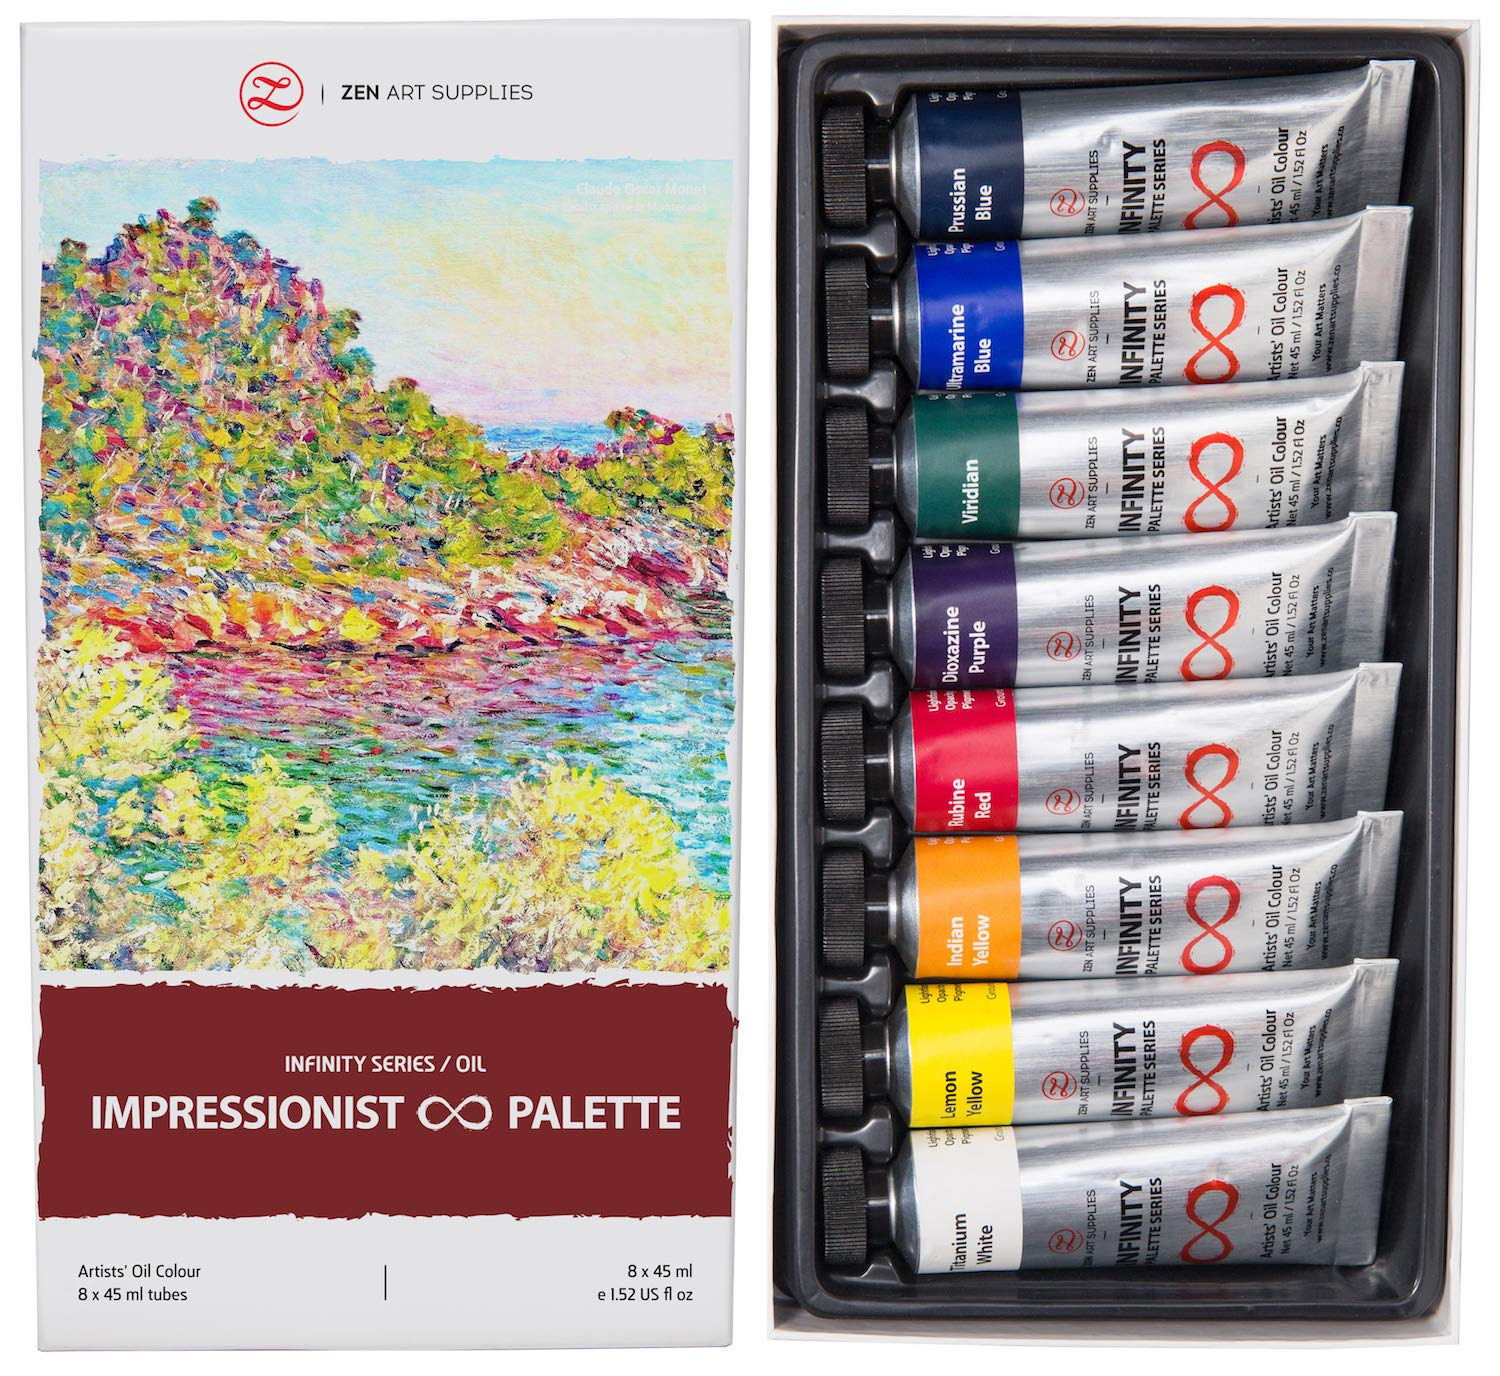 Oil Paints for Artists - 8 x Large 45ml Tubes - Impressionist Palette of Eco-Friendly, Non-Toxic, Lightfast Paint with Exceptional Pigment Load - The Infinity Series by ZenART by ZenART Supplies